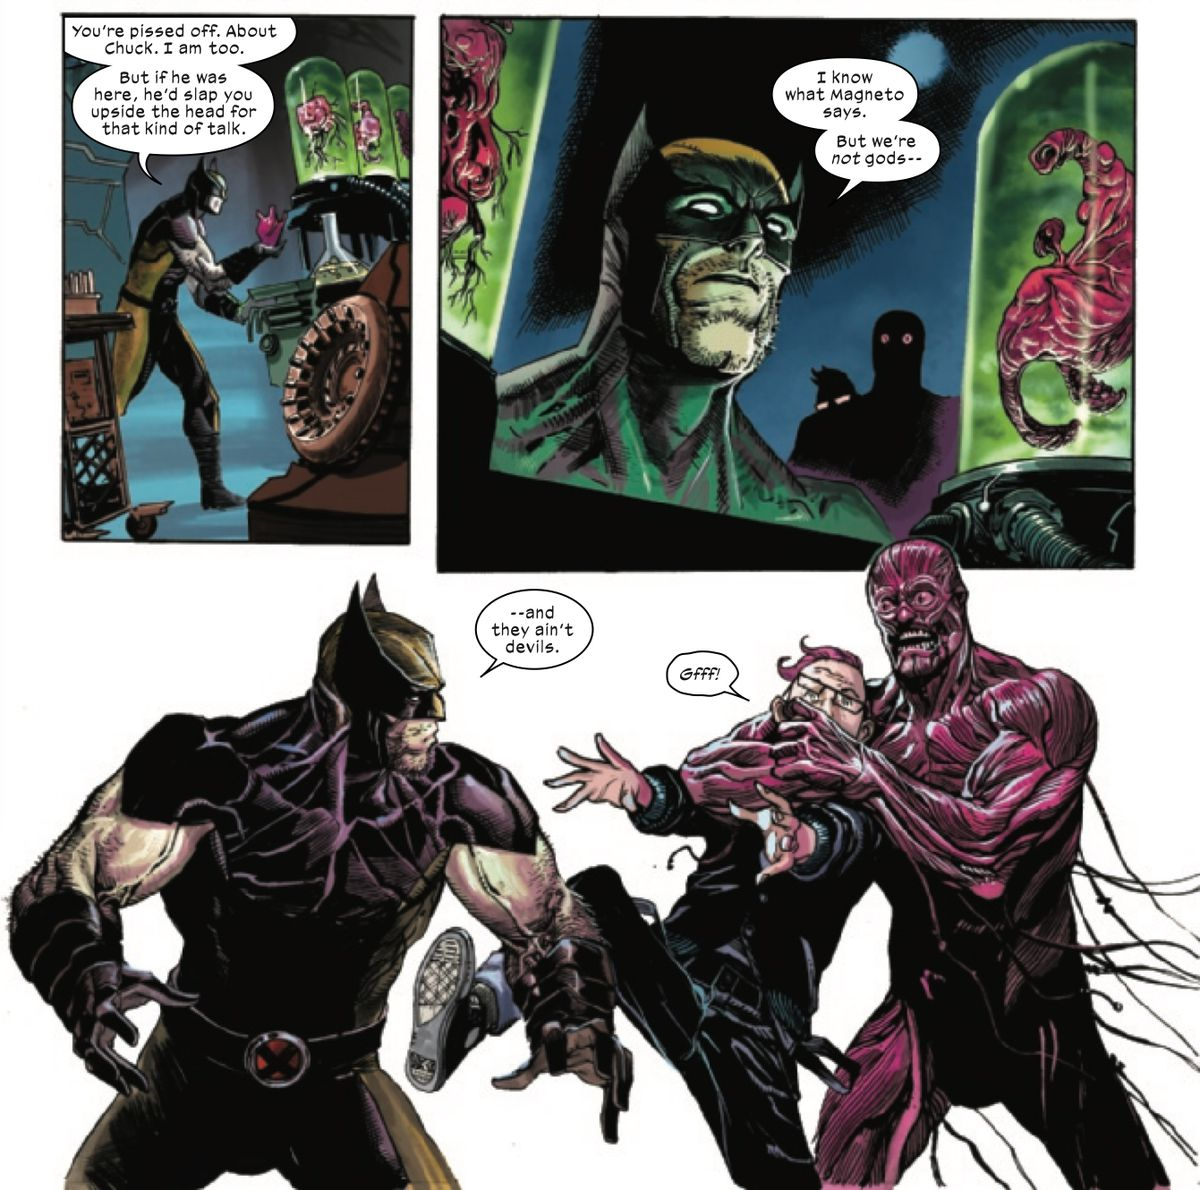 """""""We we're not gods, and they ain't devils,"""" Wolverine says, just as Kid Omega gets jumped by a half-baked supersoldier in X-Force #2, Marvel Comics (2019)."""